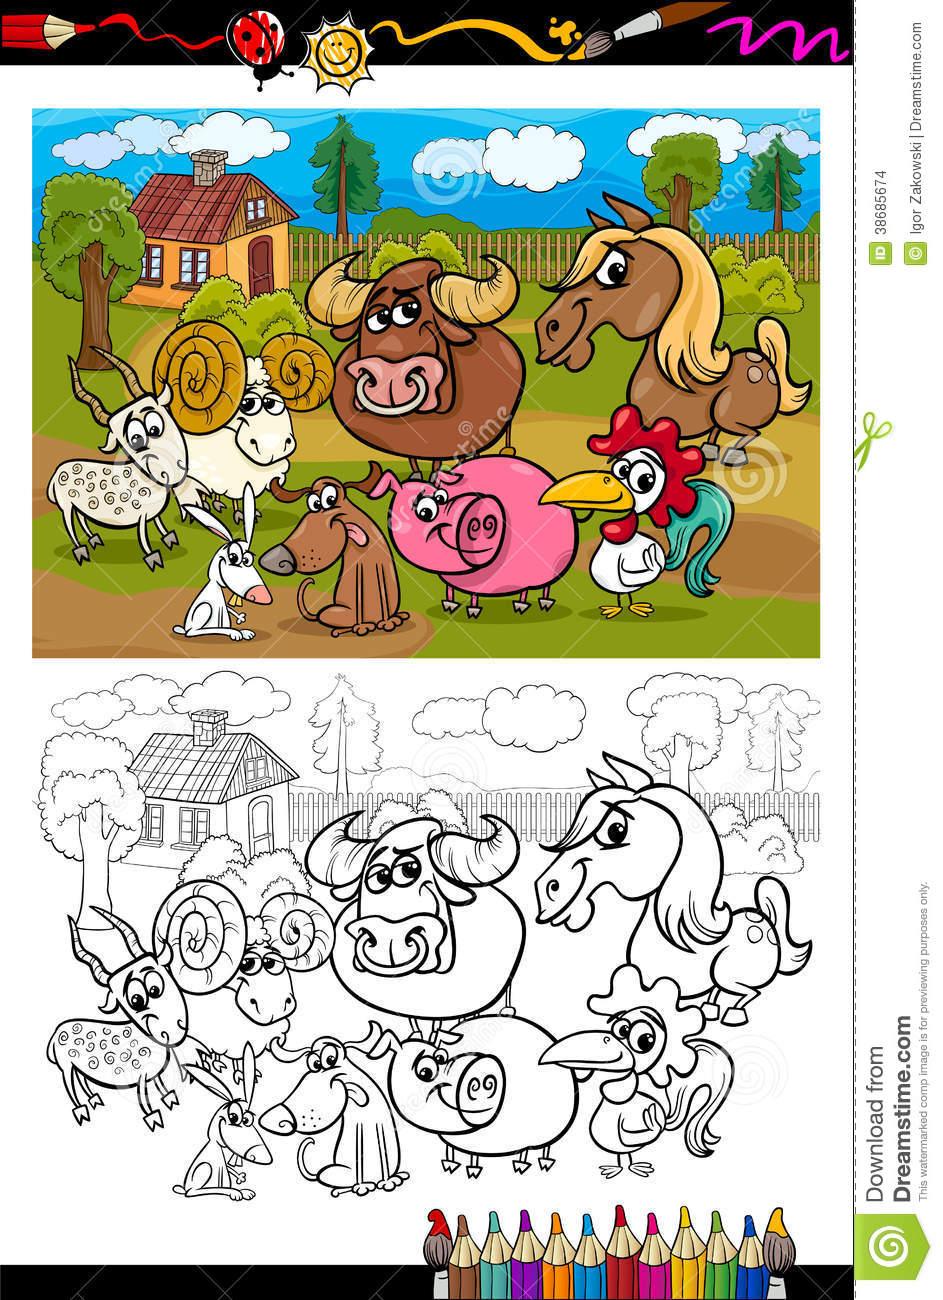 Coloring book pages farm animals - Cartoon Farm Animals For Coloring Book